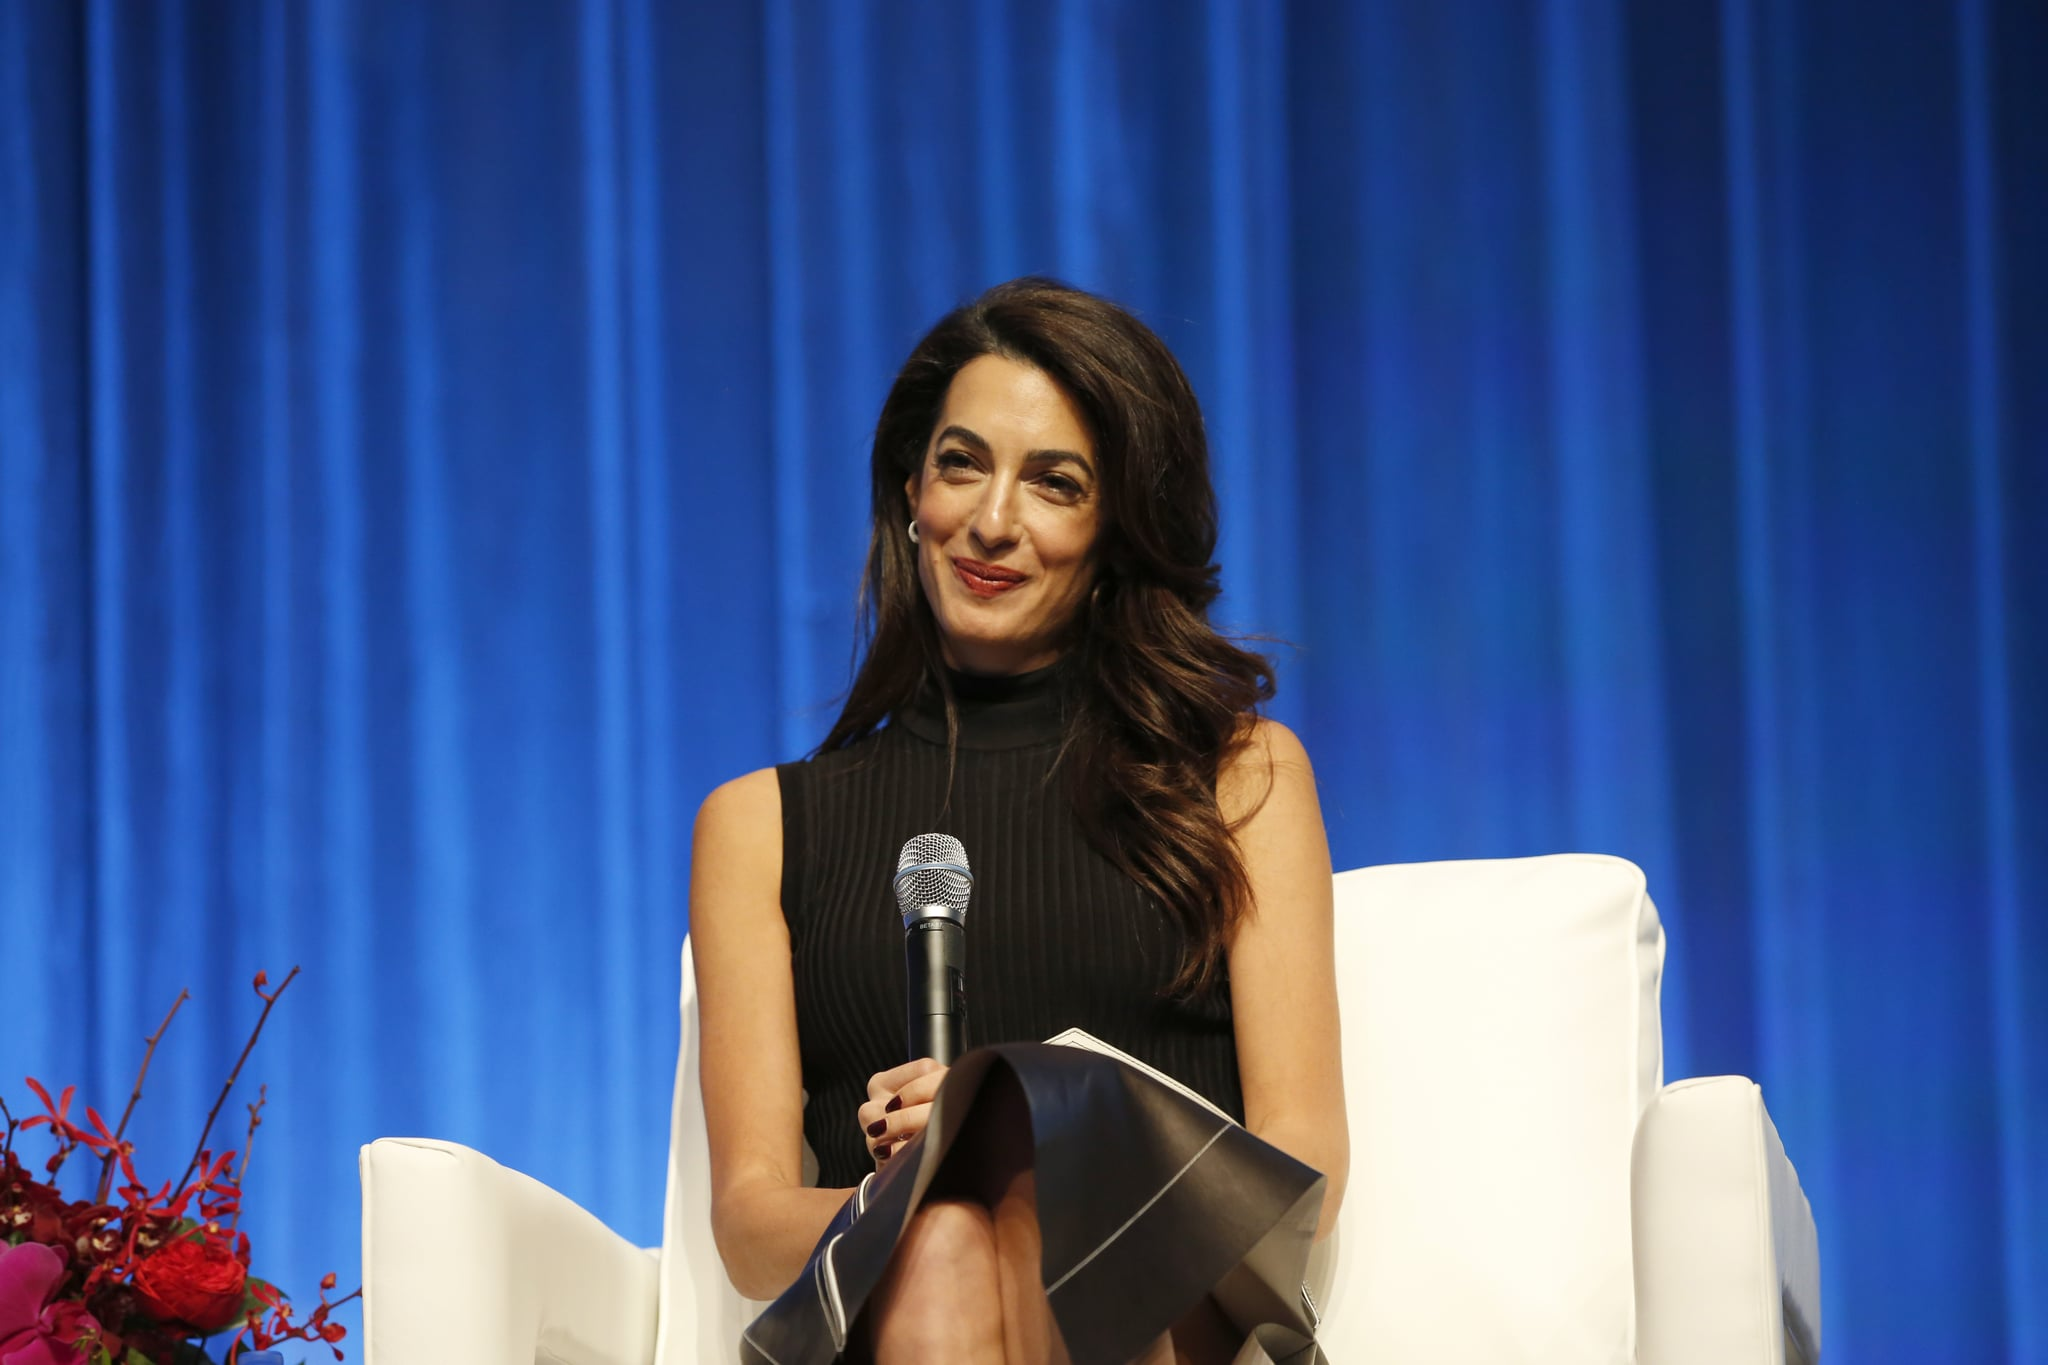 BOSTON, MA - DECEMBER 06:  Human rights lawyer Amal Clooney speaks on stage during 2018 Massachusetts Conference For Women at Boston Convention & Exhibition Centre on December 6, 2018 in Boston, Massachusetts.  (Photo by Marla Aufmuth/WireImage )